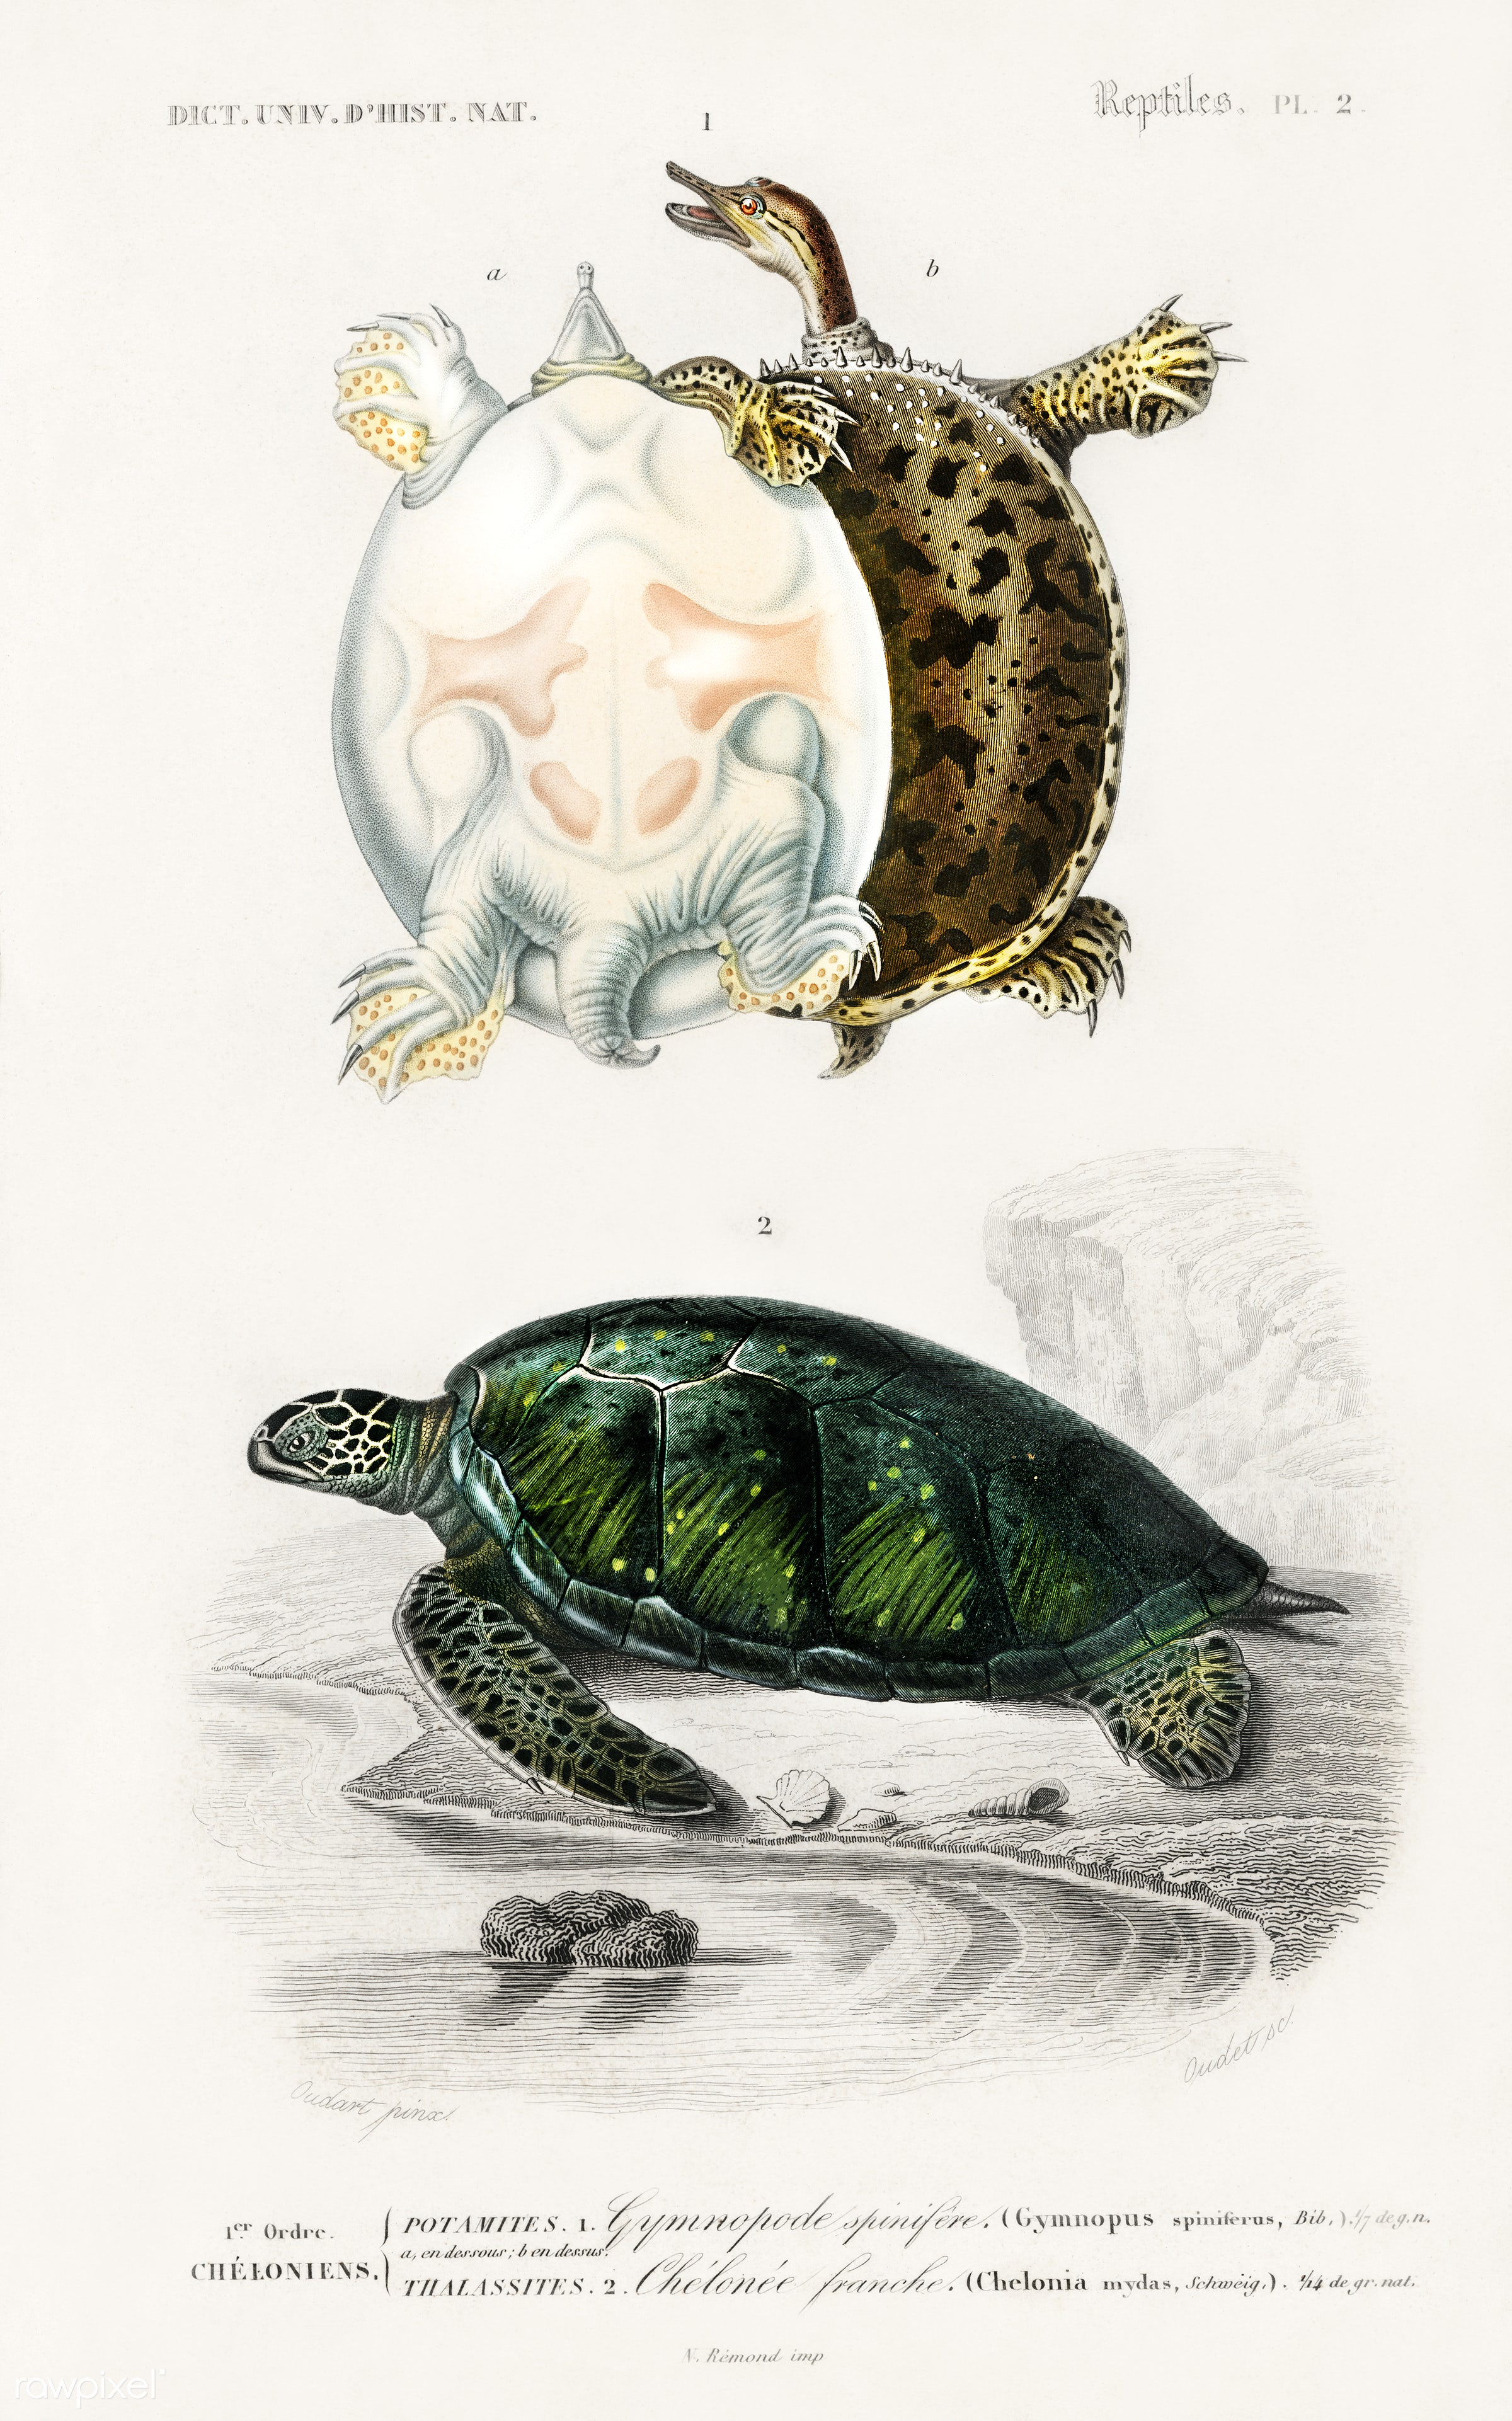 Green Sea Turtle (Chelonia mydus) and Spiny softshell turtle (Gymnopus spiniferus) illustrated by Charles Dessalines D'...